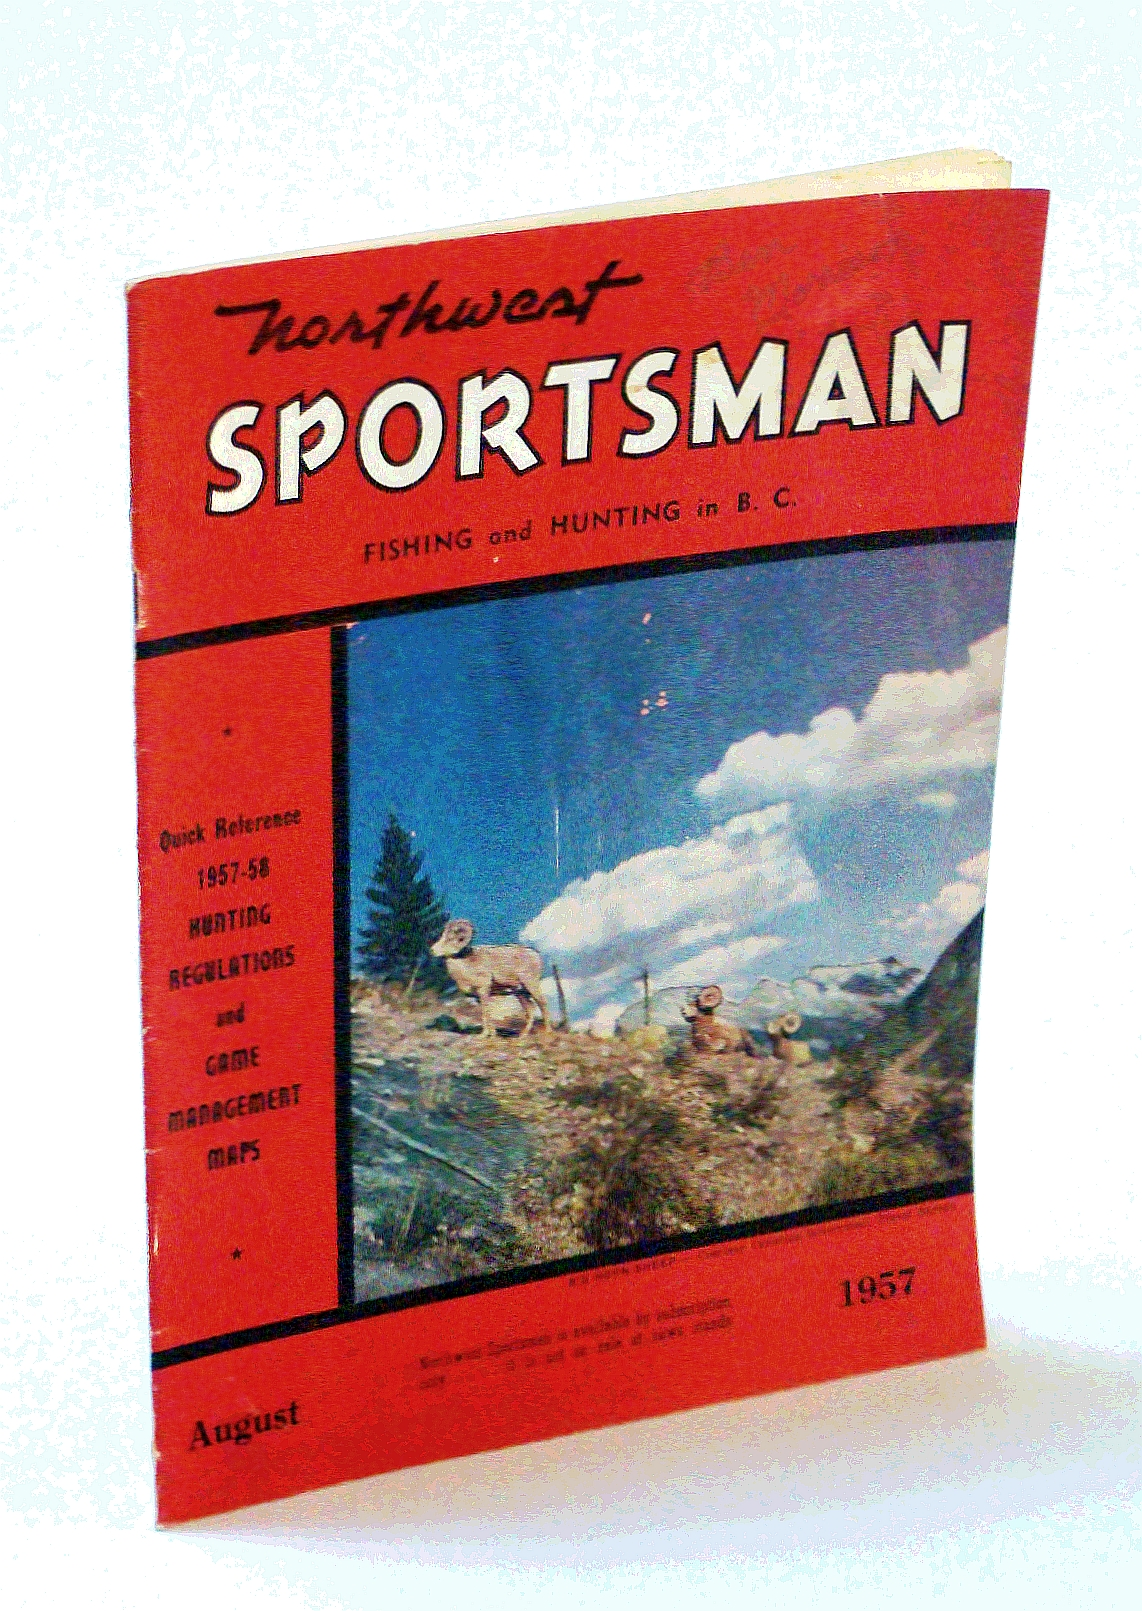 Image for Northwest Sportsman Magazine - Fishing and Hunting in B.C., August [Aug.] 1957 - 1957-58 Hunting Regulations and Game Management Maps (Quick Reference)